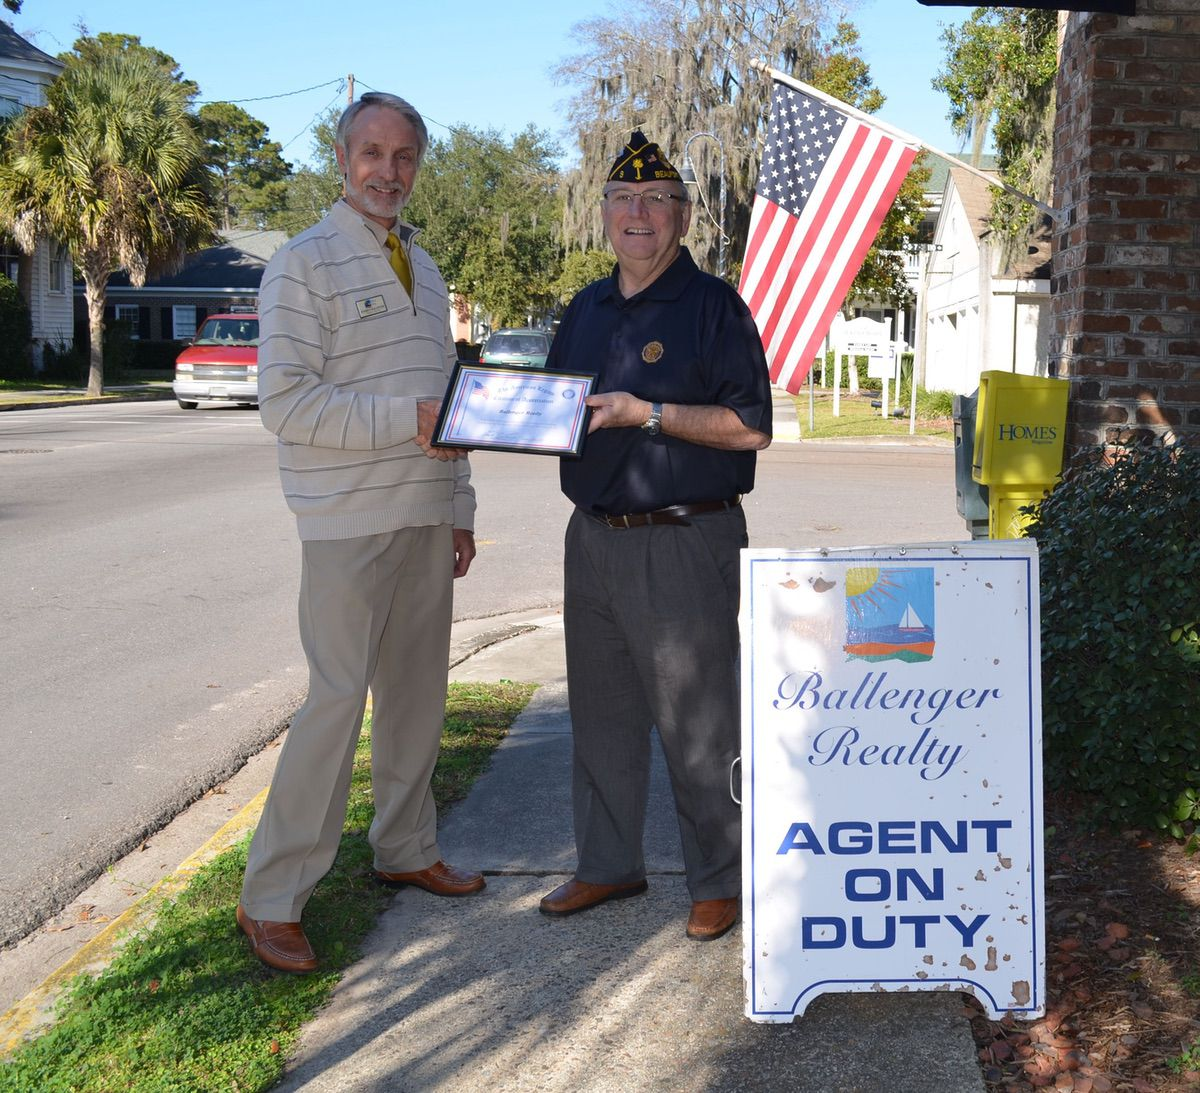 American Legion Post 9 Commander Chuck Lurey presents Everett Ballenger a certificate of appreciation to recognize local businesses that display the American flag.